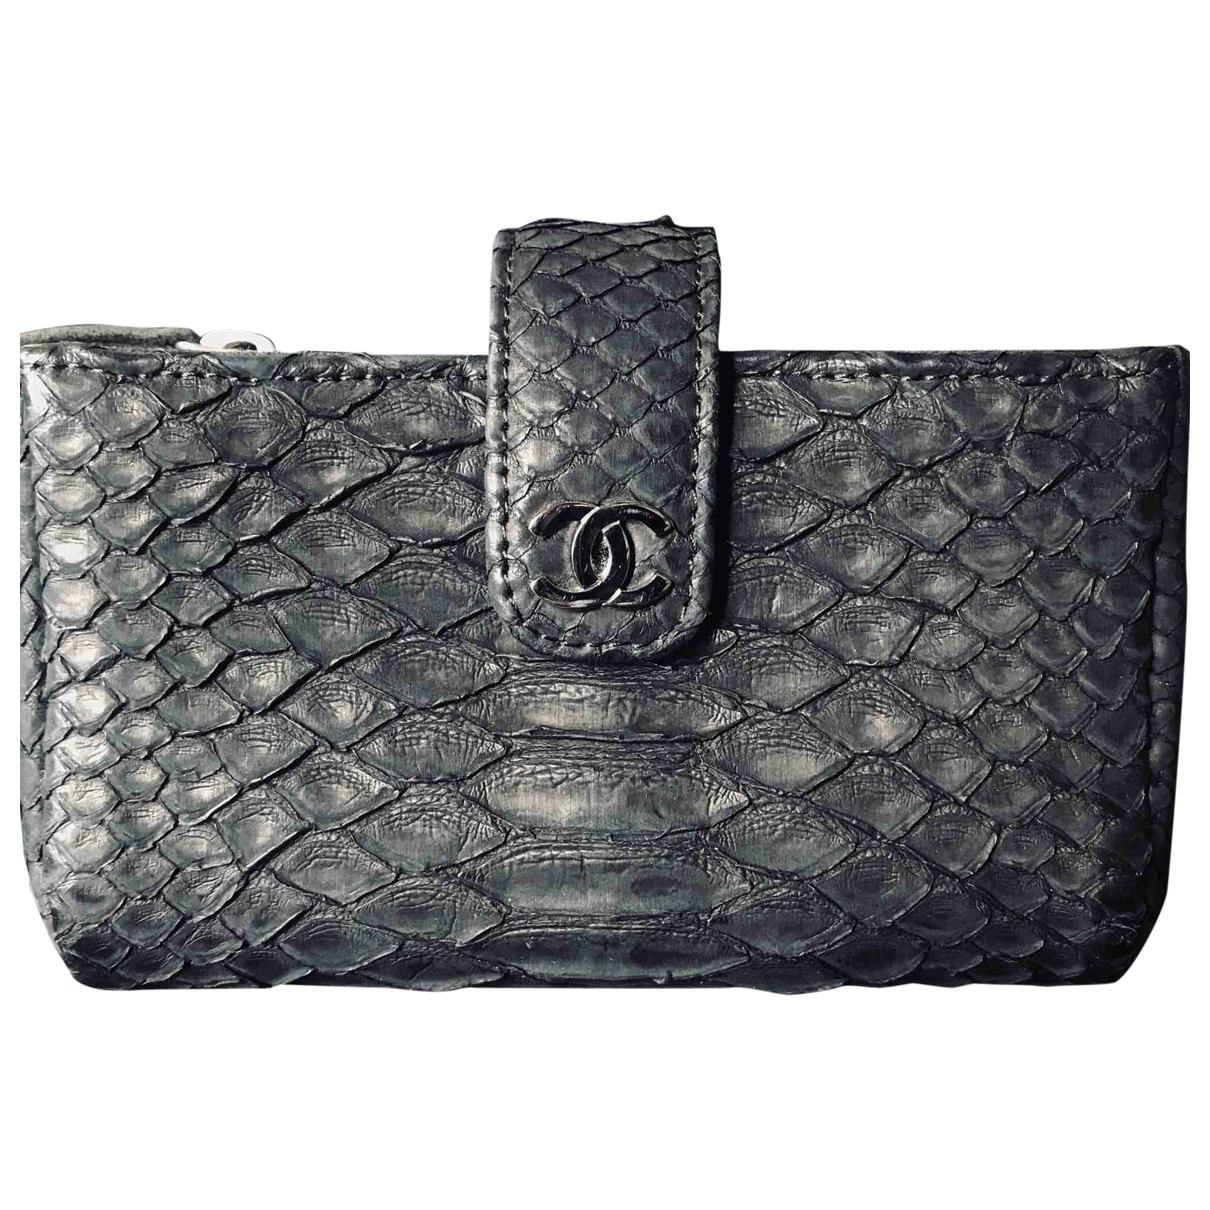 Chanel \N Black Python Purses, wallet & cases for Women \N